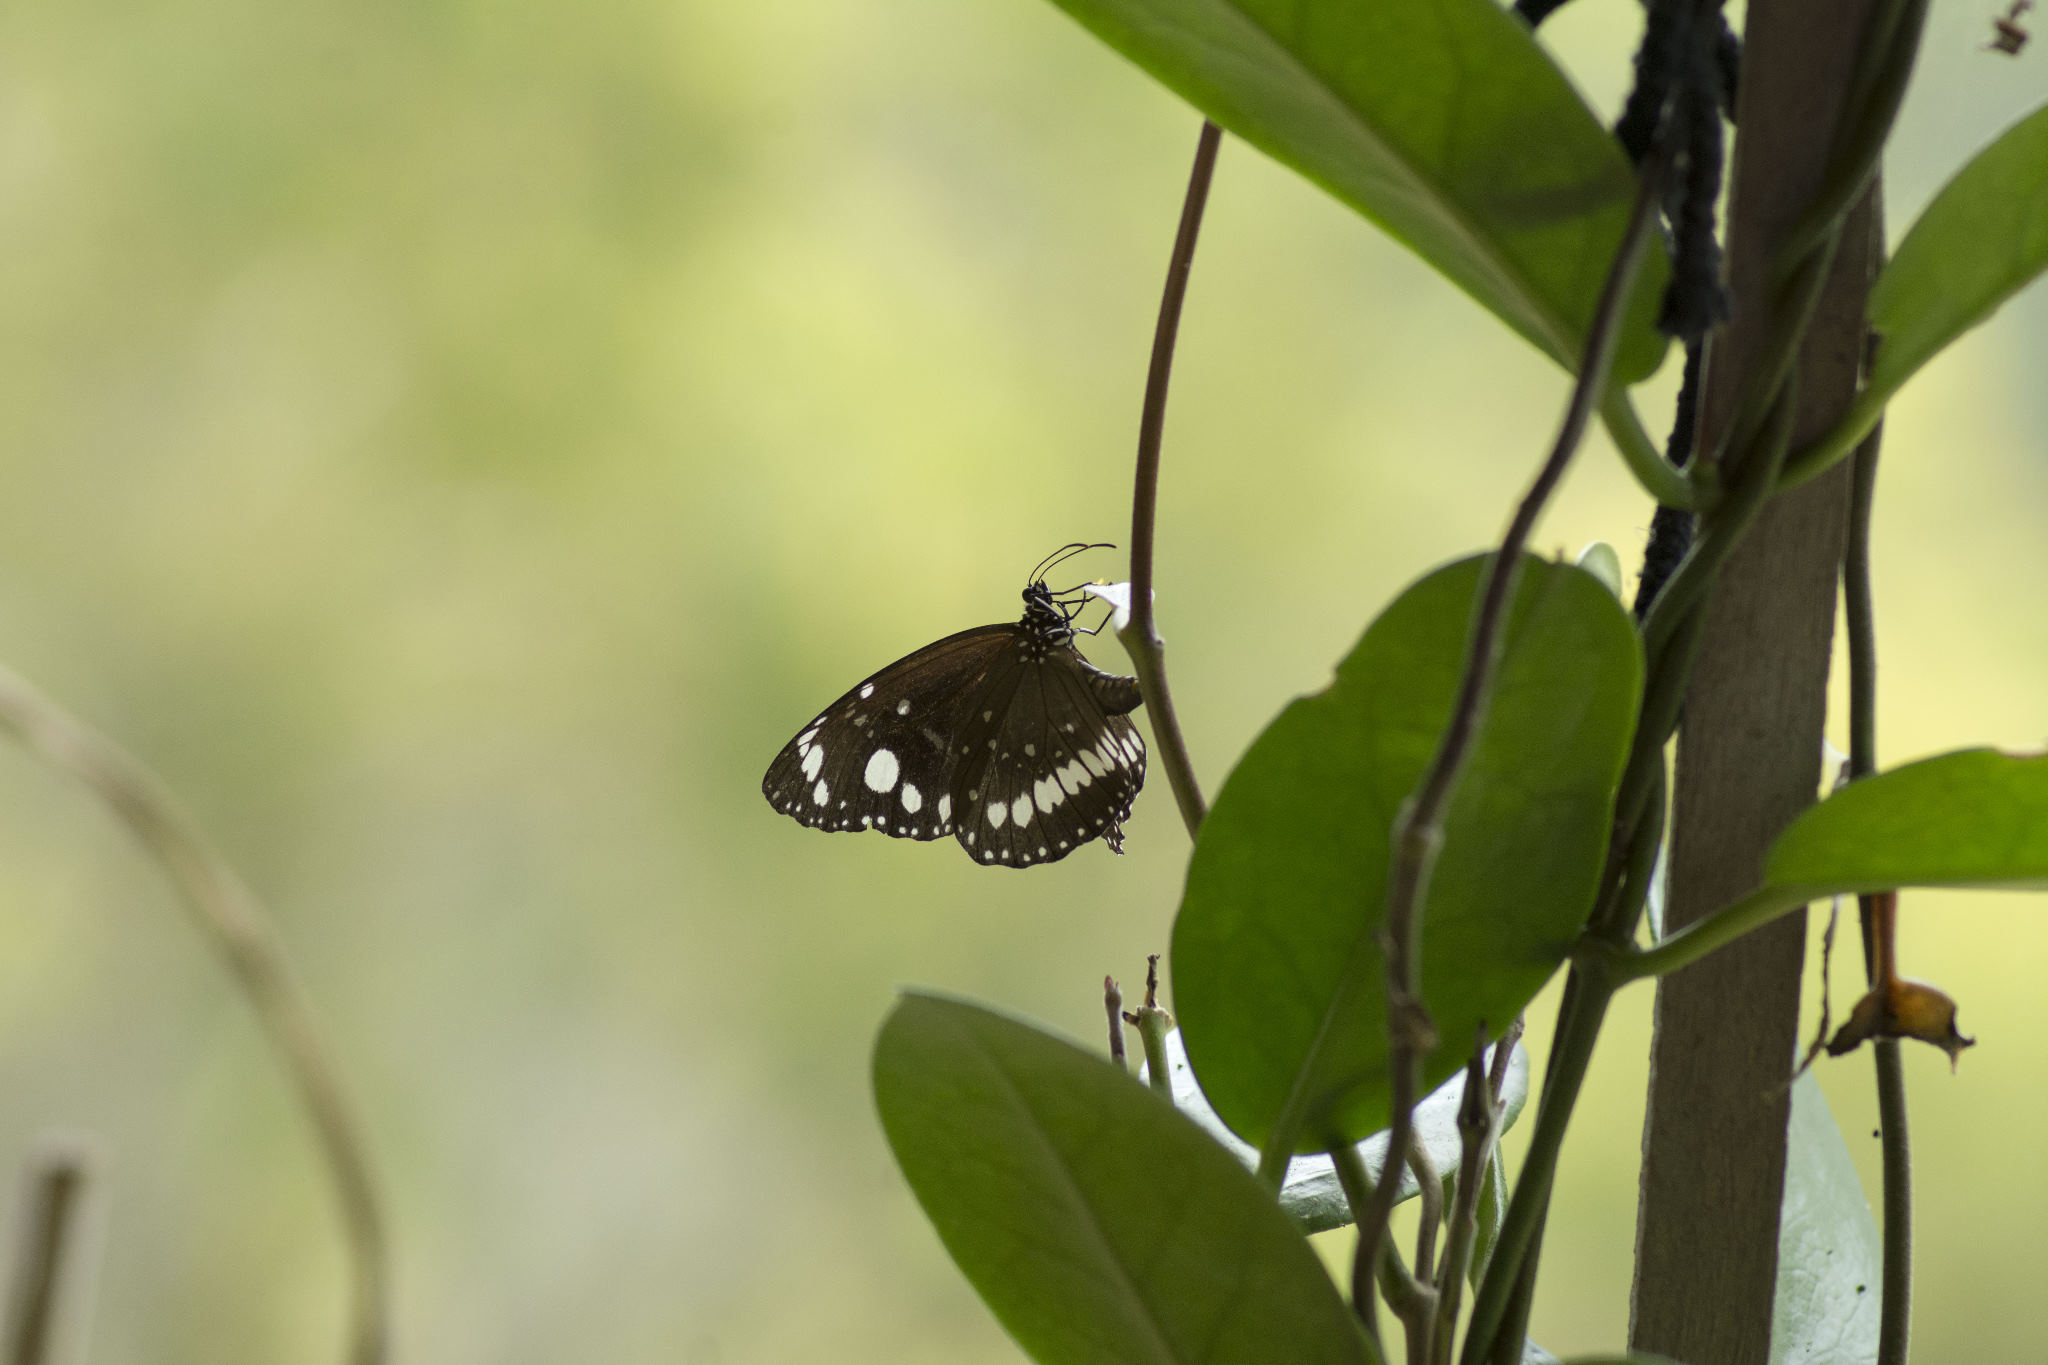 Common Australian Crow Butterfly